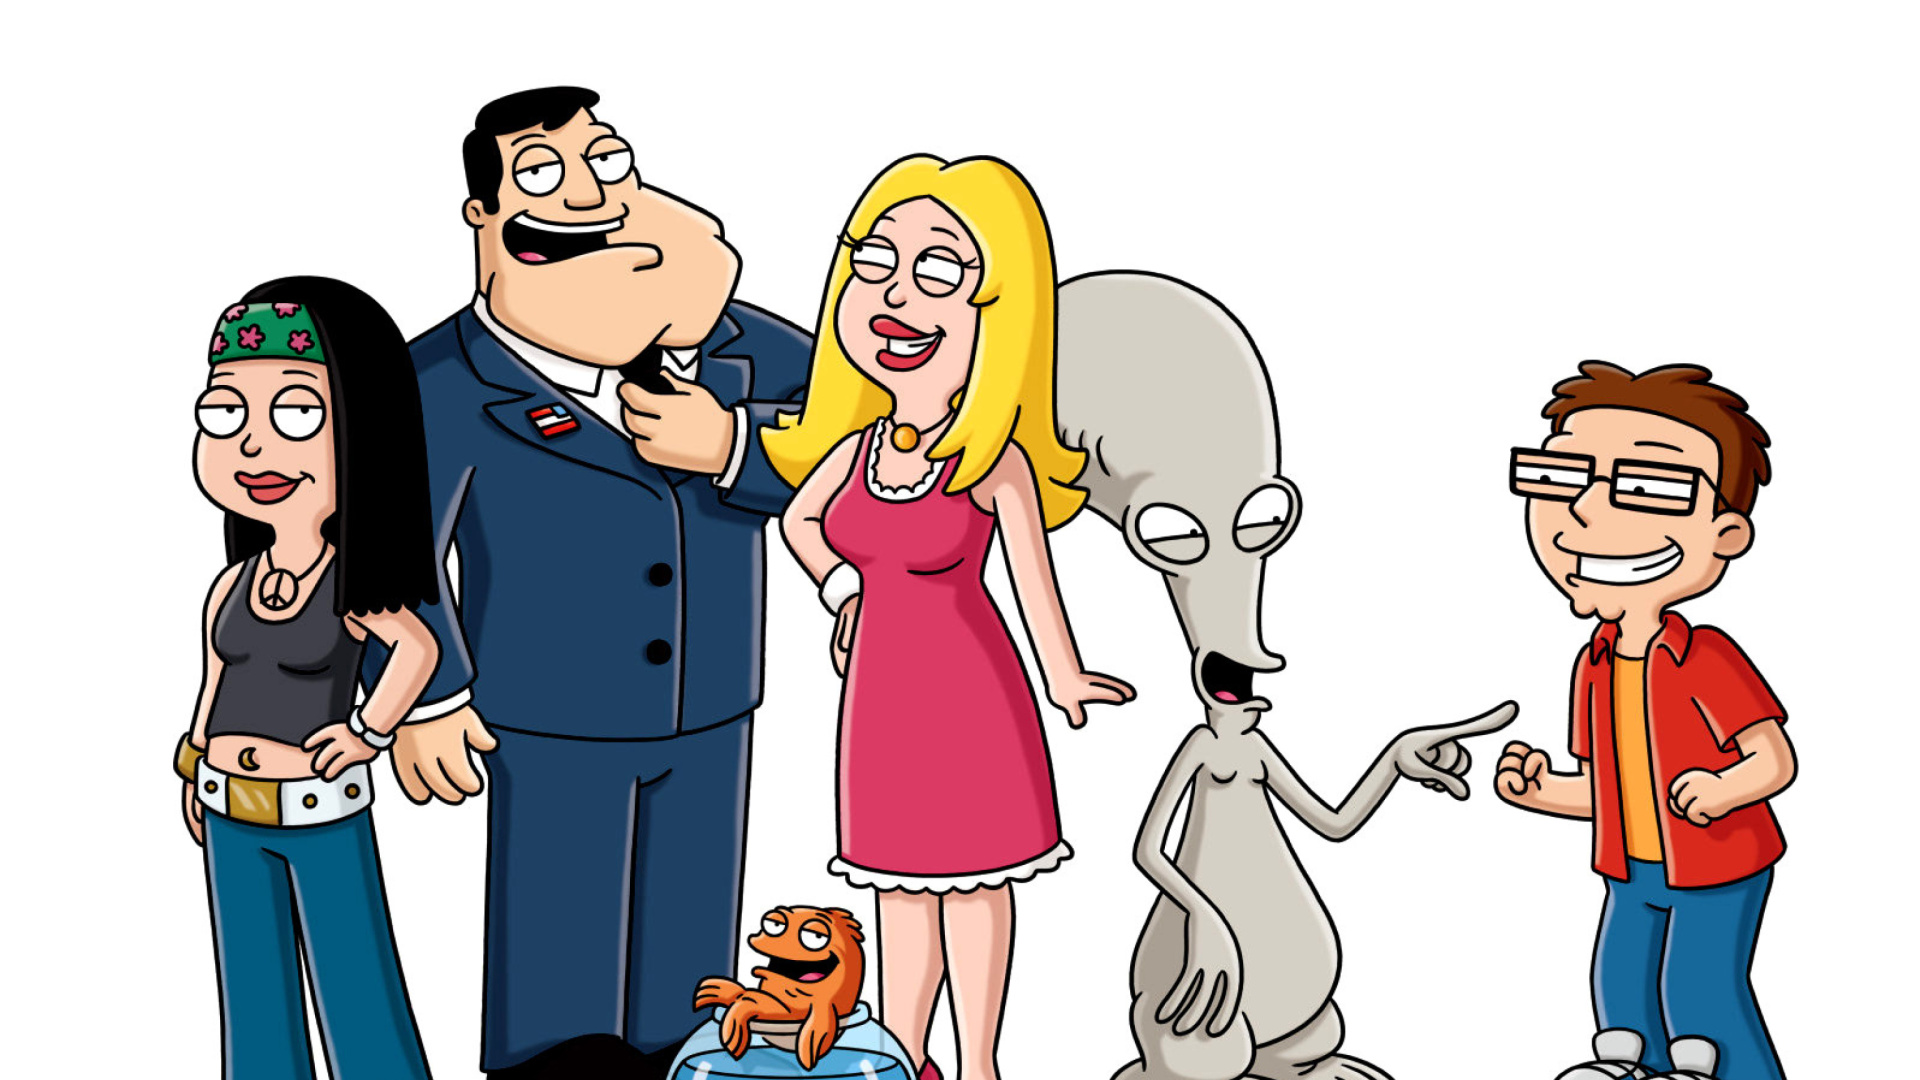 american dad wallpaper hd